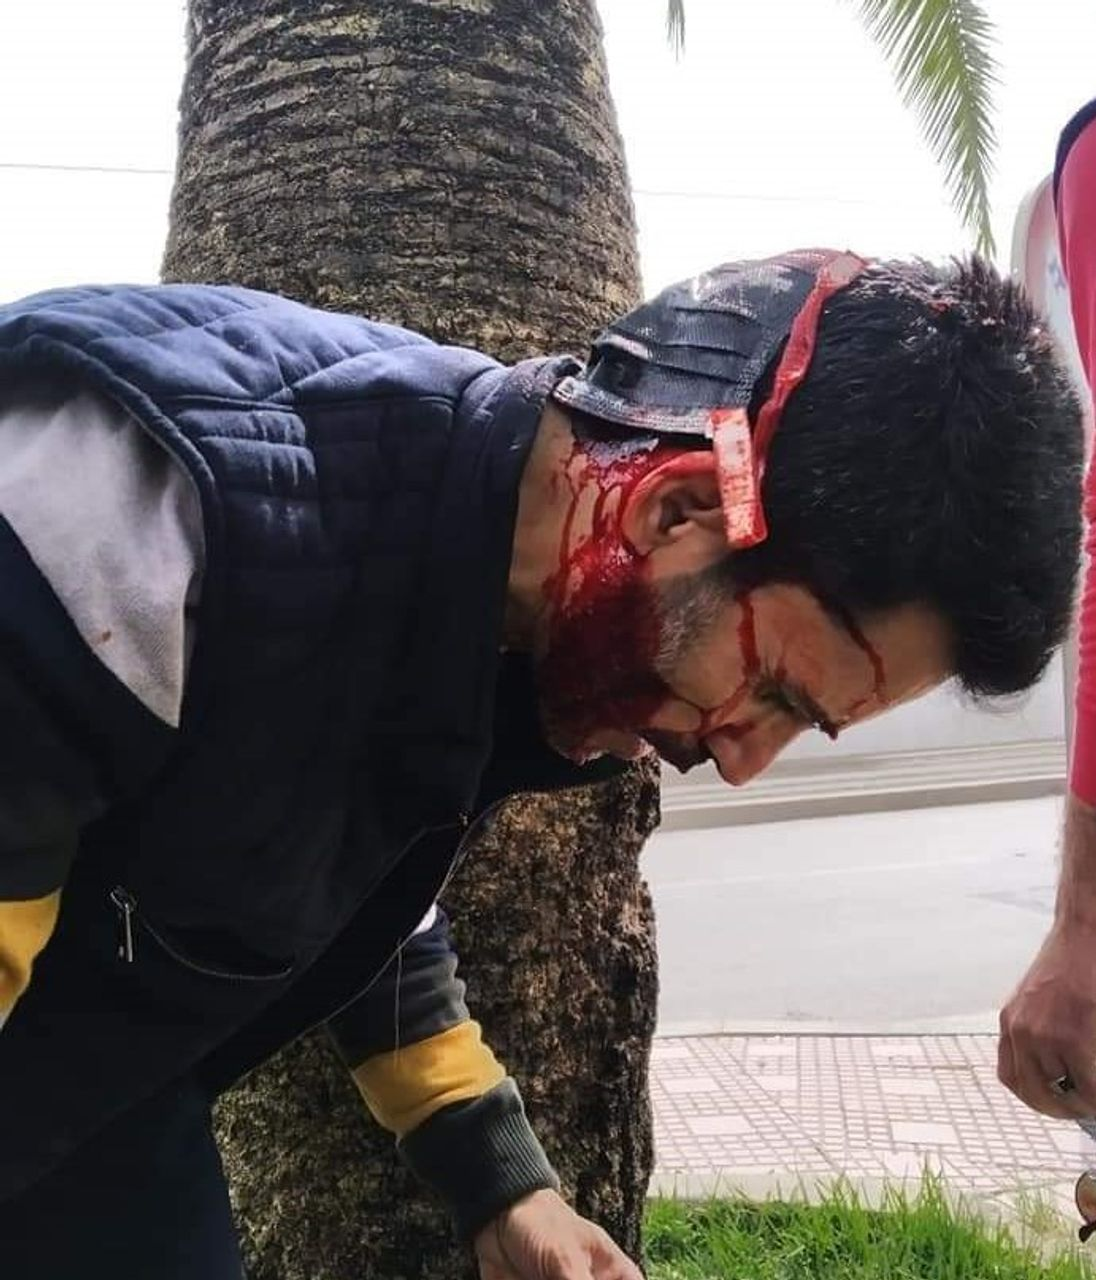 Moroccan government, police violently assault protesting teachers